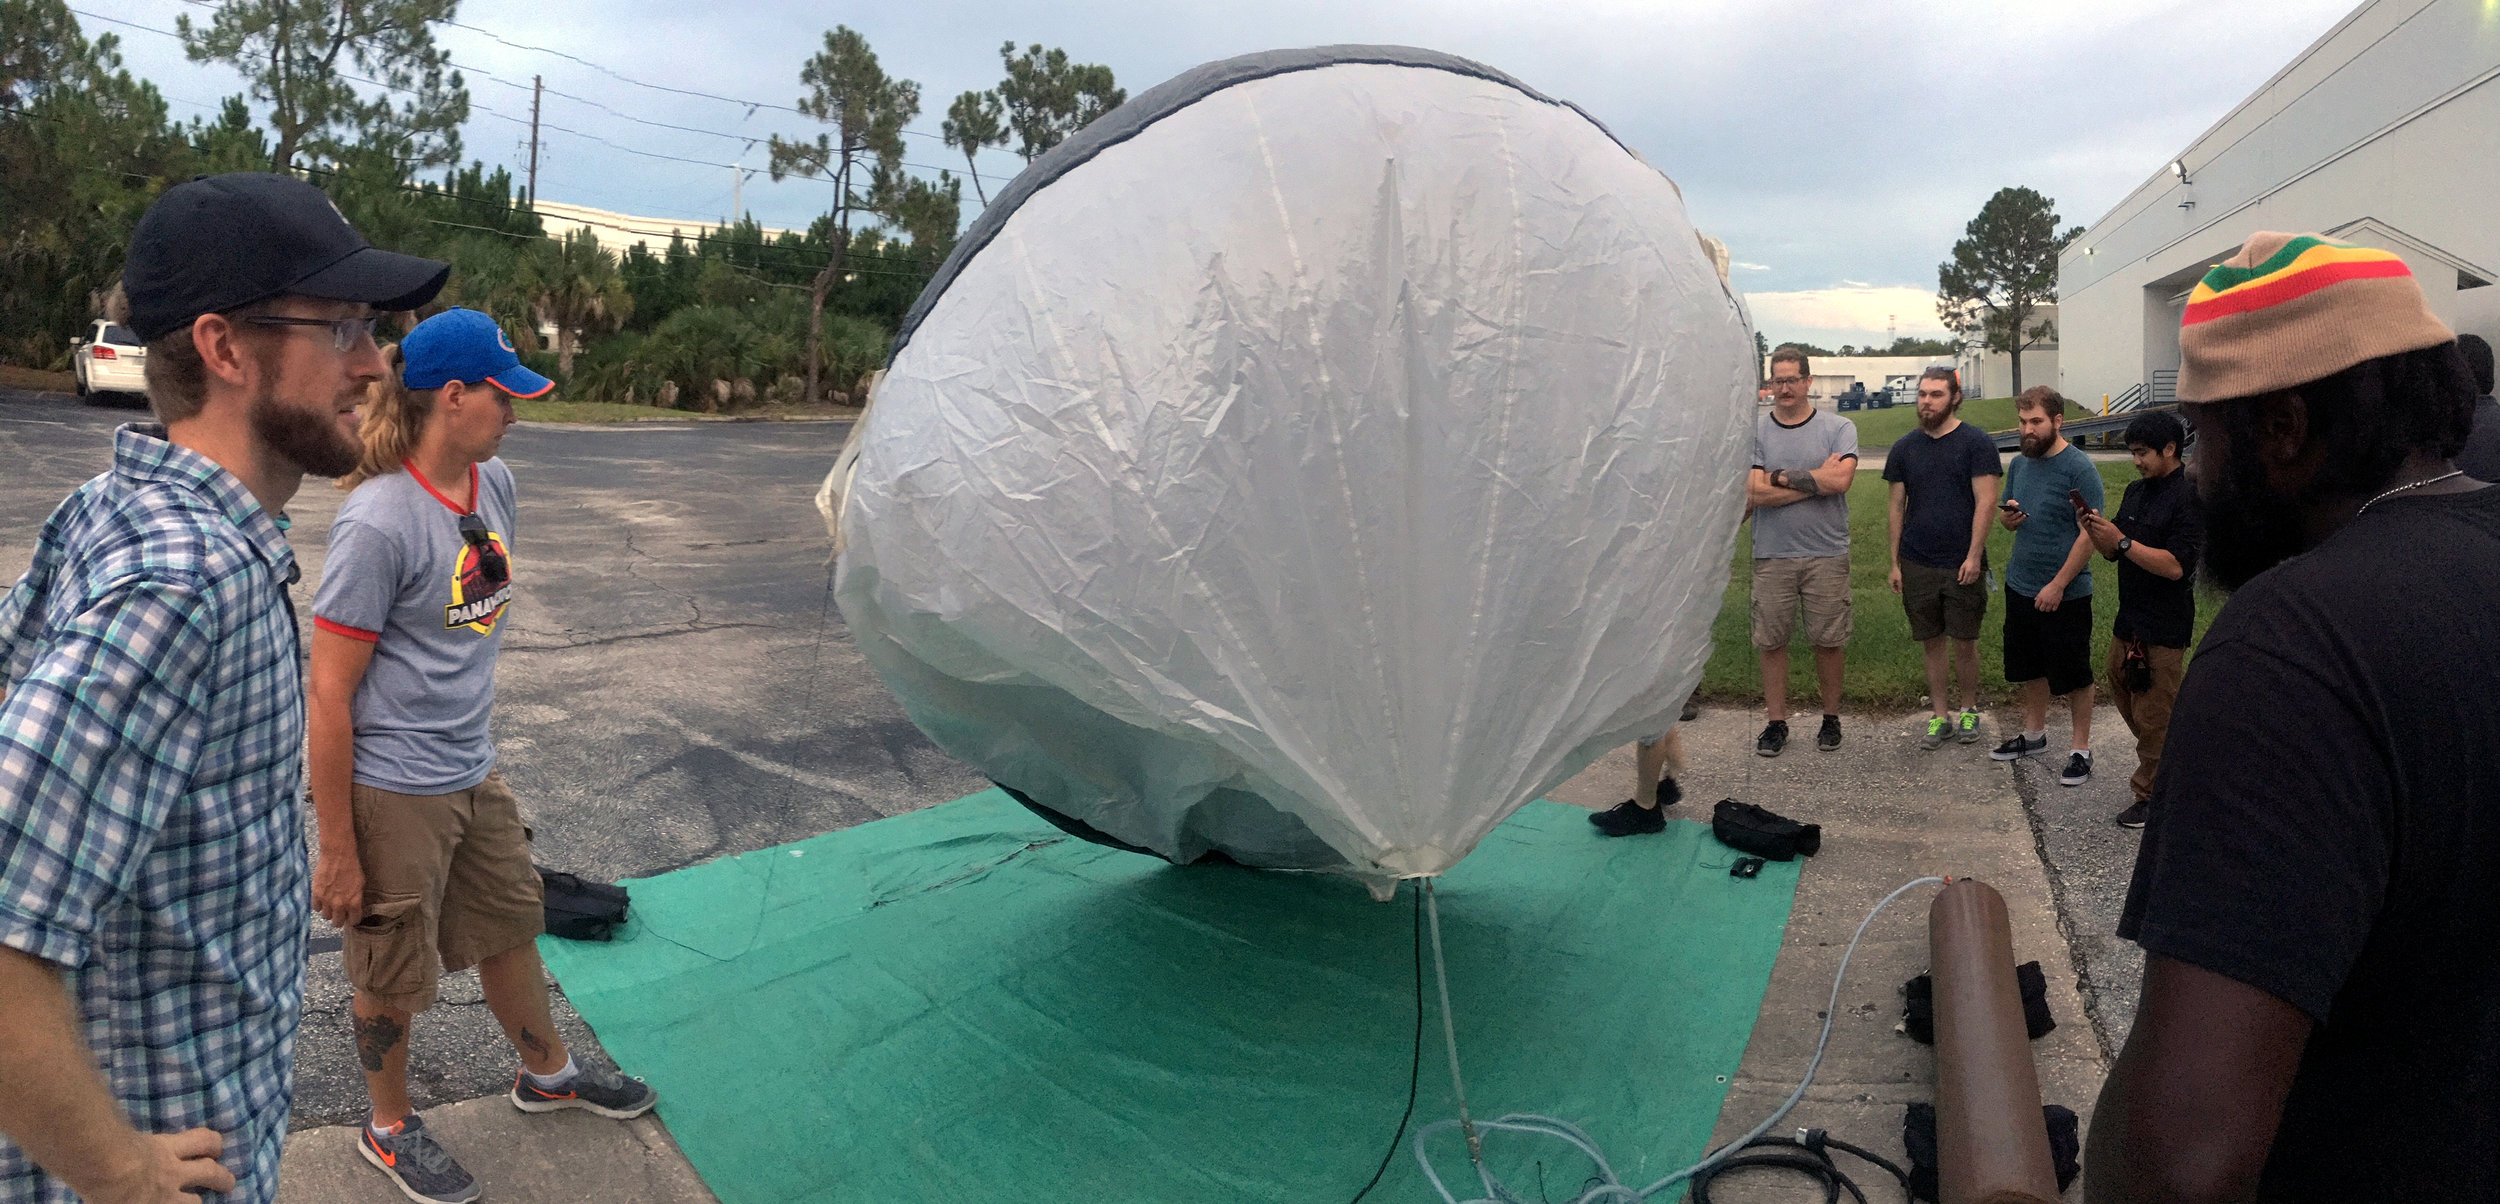 Airstar Aerial Balloon in Fort Lauderdale, FL | July 19, 2018